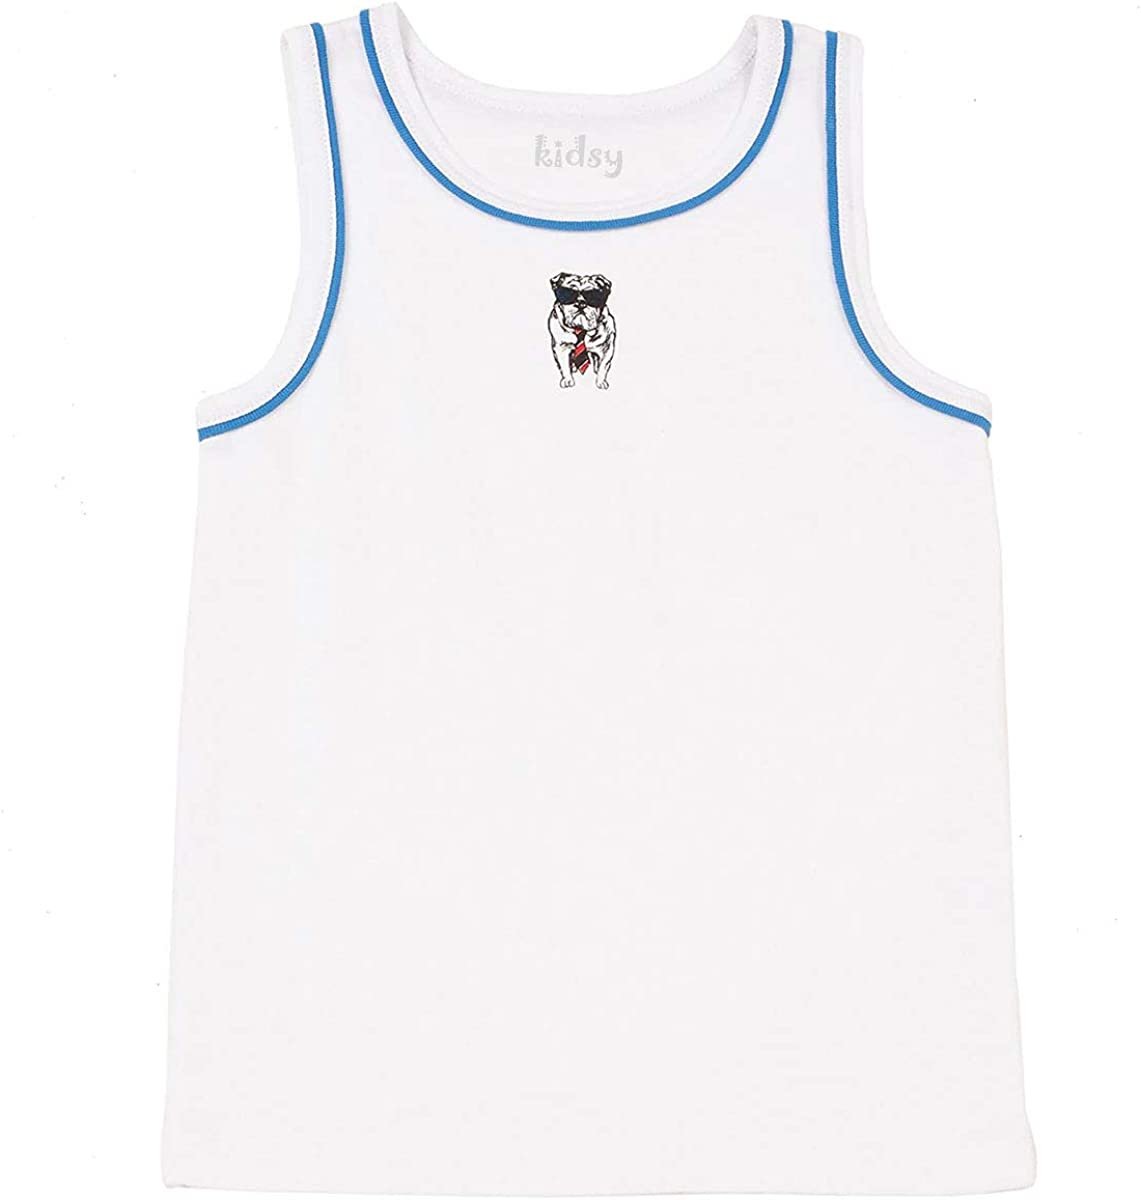 Kidsy Boys Cool Bulldog, Tiger, Monster Graphic Printed Peruvian Cotton Tank Tops for 2, 3, 4, 5, 6, 8 Years